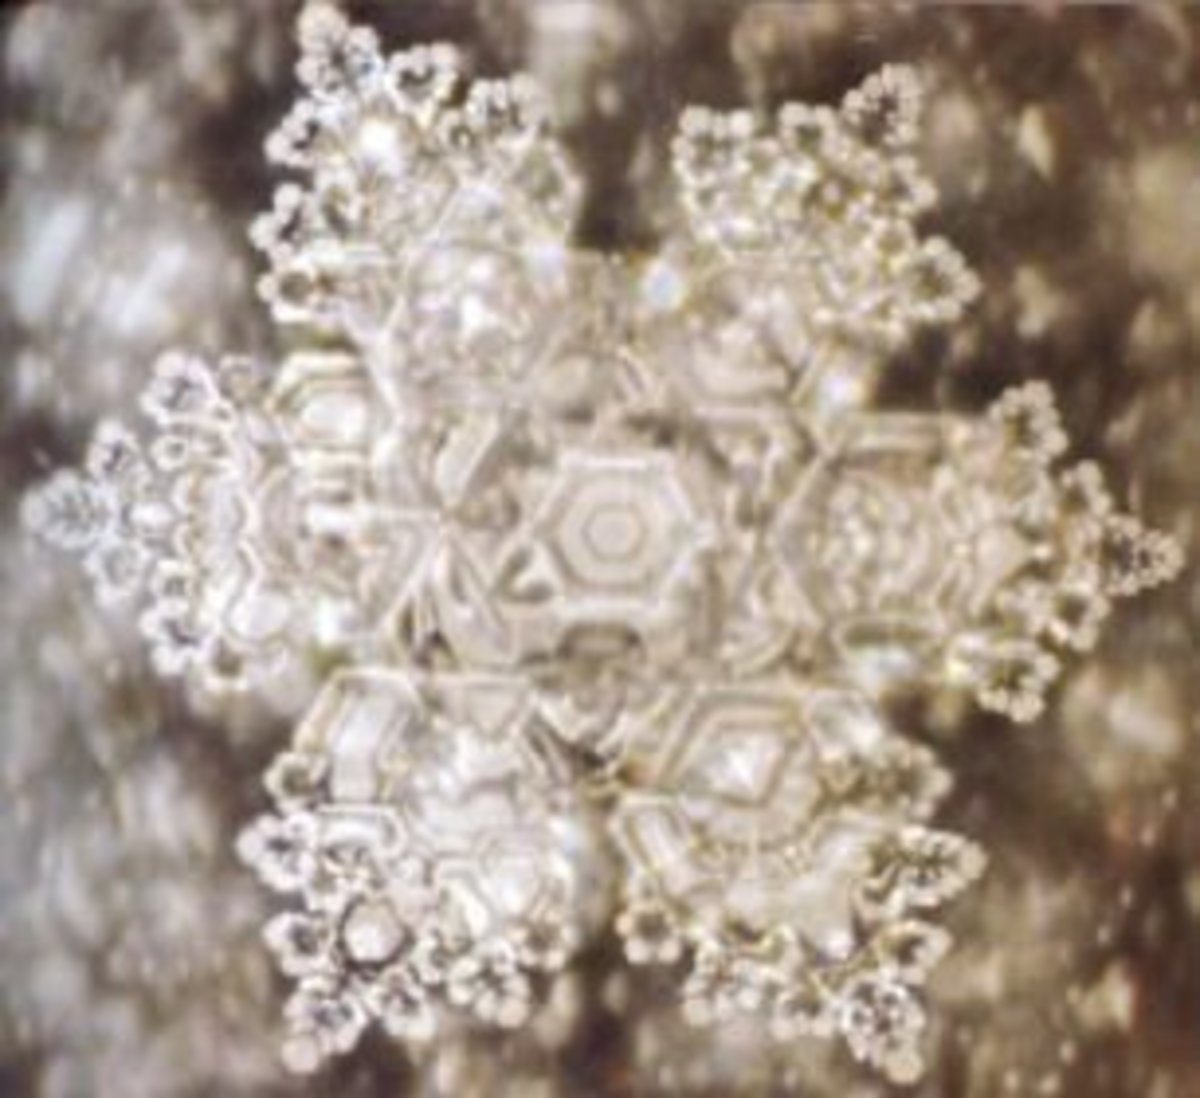 mind-over-matter-ice-crystals-and-doctor-masuro-emoto